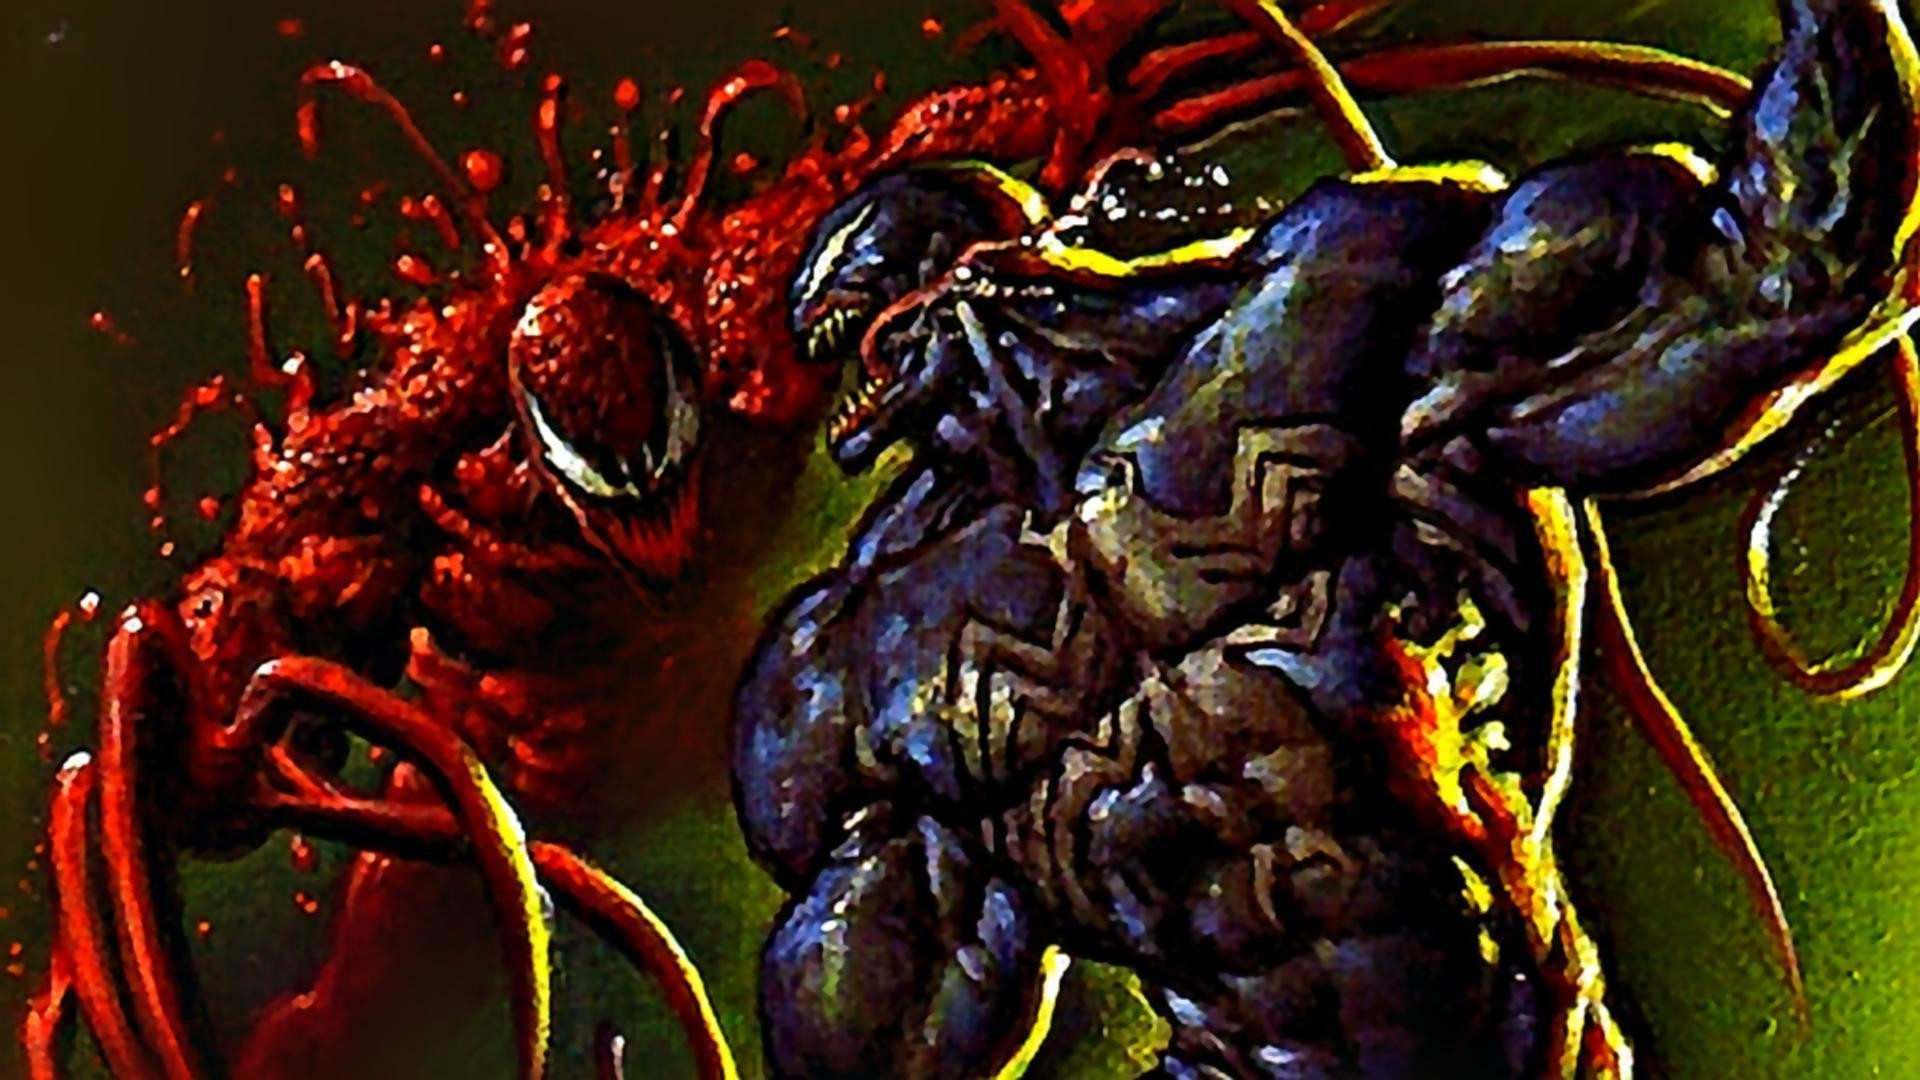 venom vs carnage wallpaper 70 images